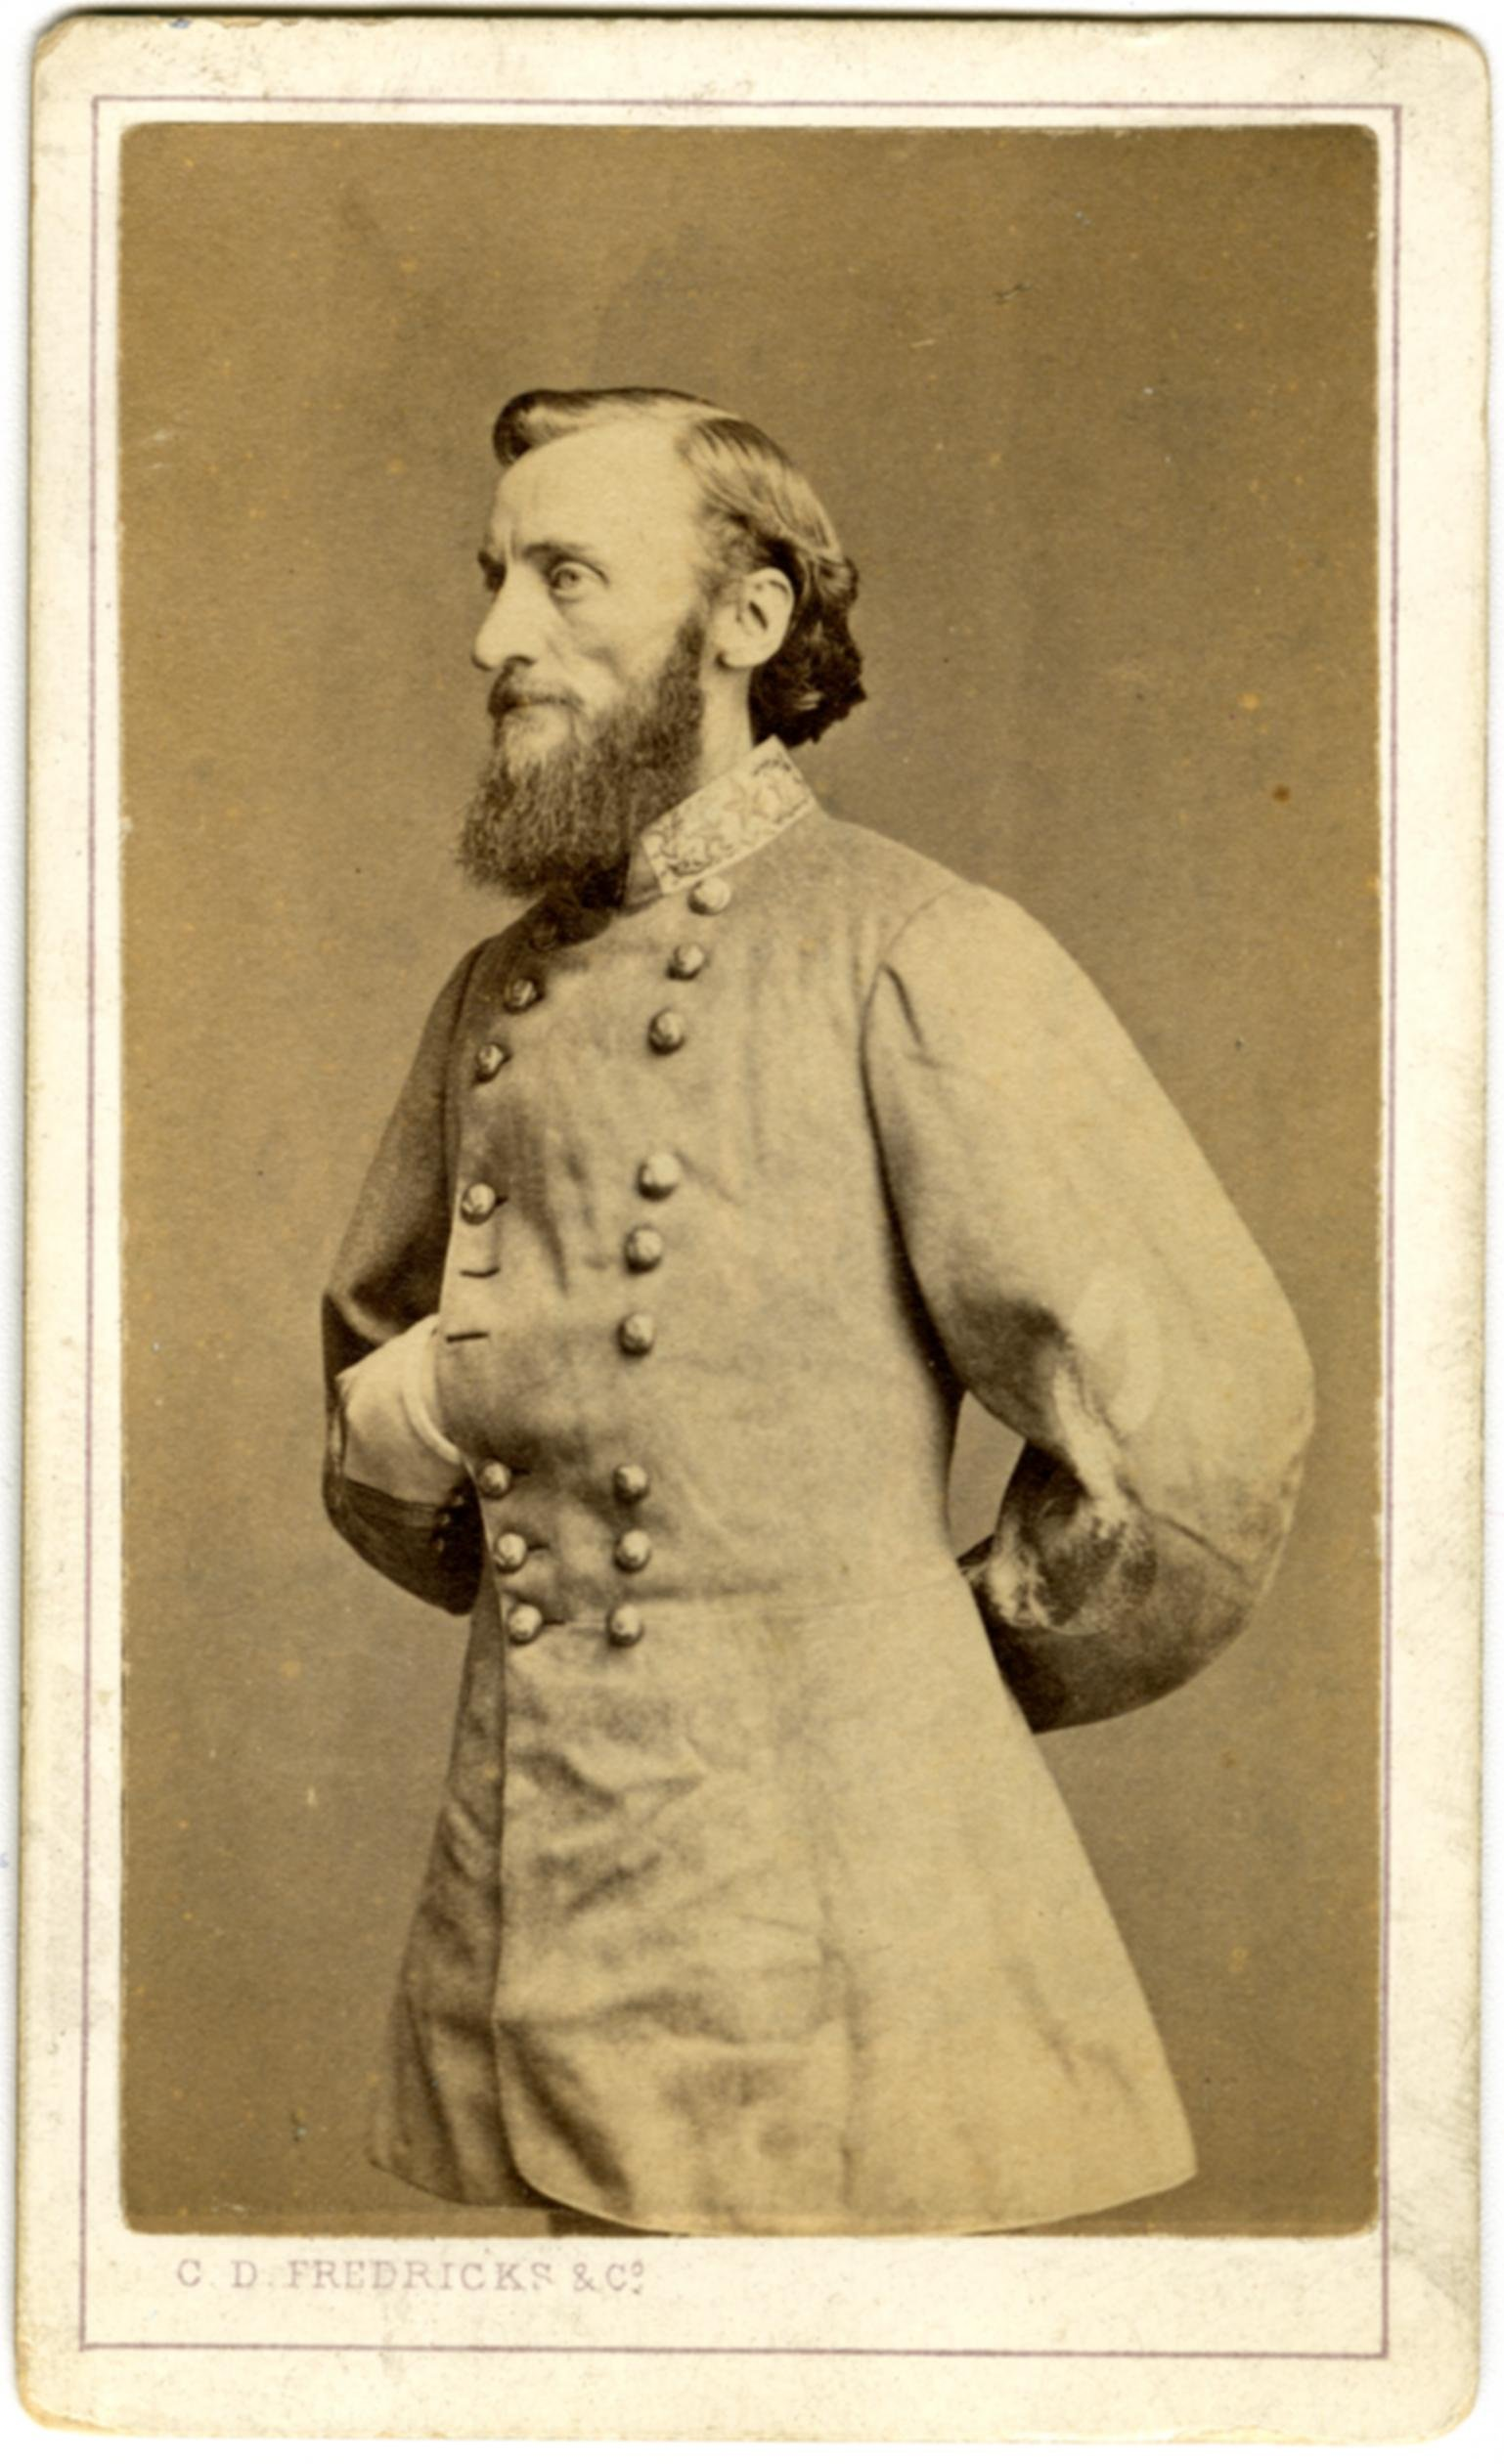 Confederate General John S. Marmaduke's division bore the brunt of the fighting. He has been criticized for his haphazard crossing of the Little Blue, which failed to concentrate his superior force against Moonlight's outnumbered Federals.